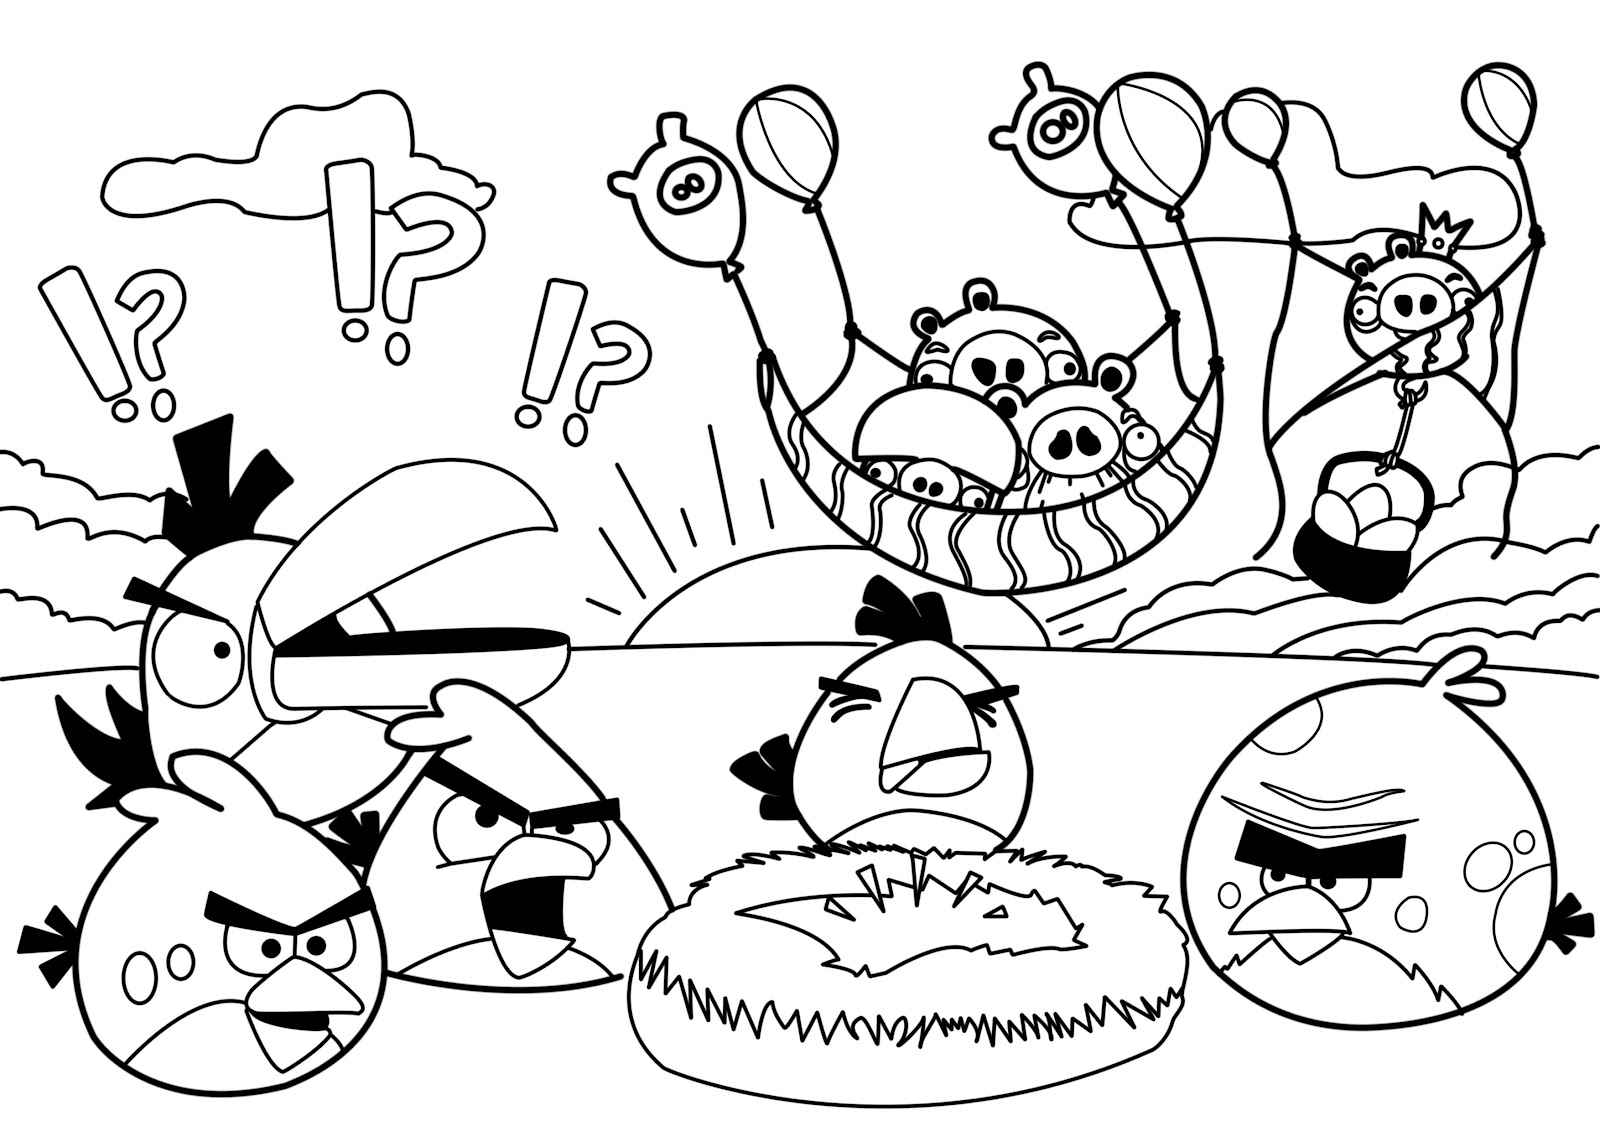 Party Angry Birds Coloring Pages Free Printable Coloring Pages For